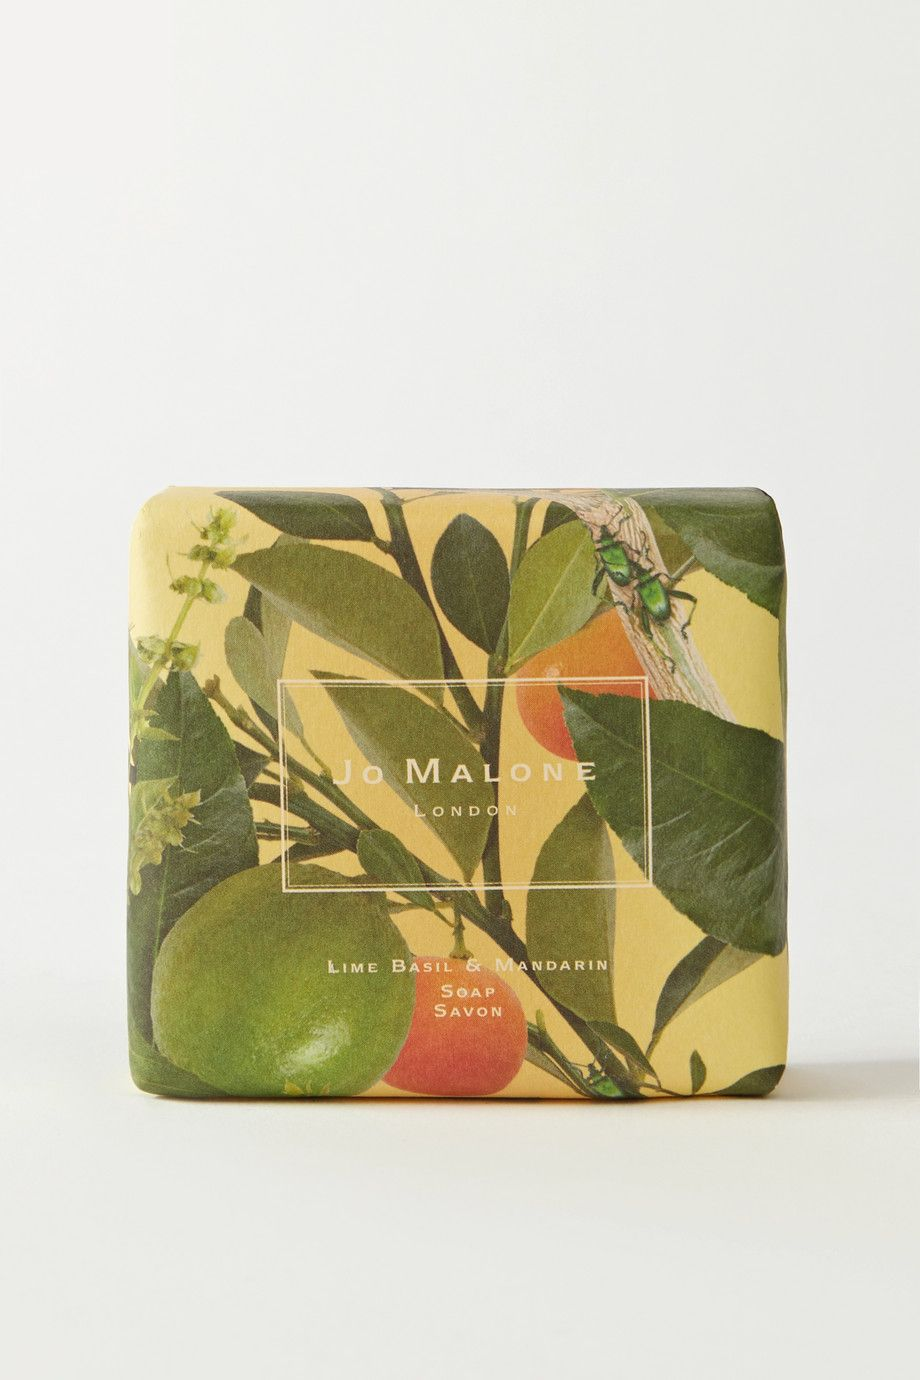 jo-malone-london-lime-basil-mandarin-soap